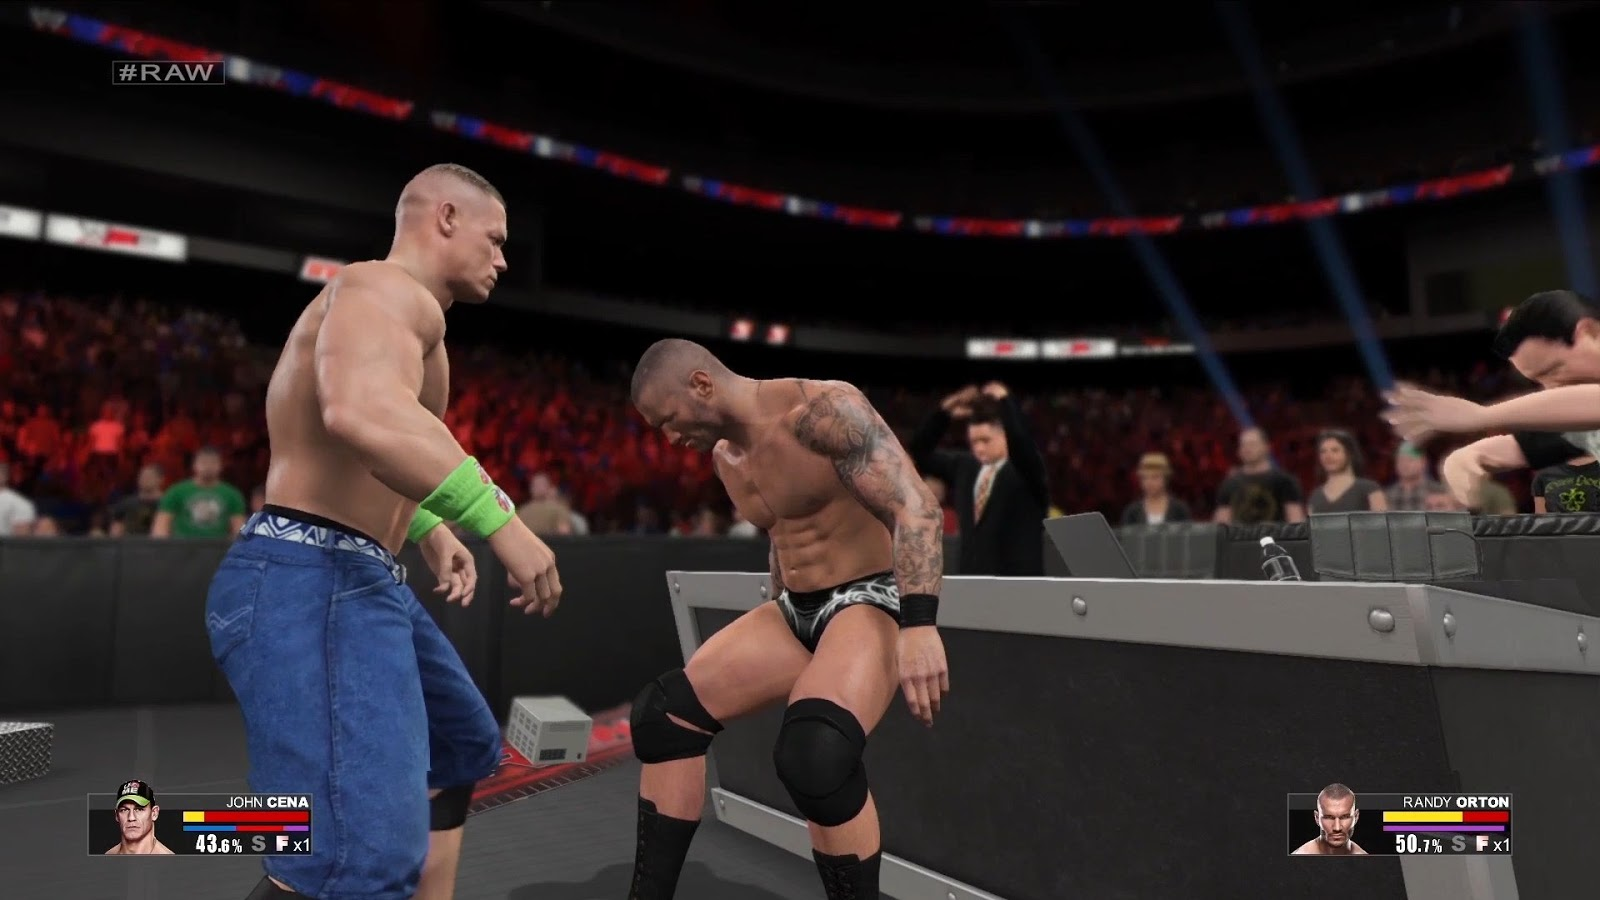 WWE 2K15 Free Download Full Version for PC - Fever of Games